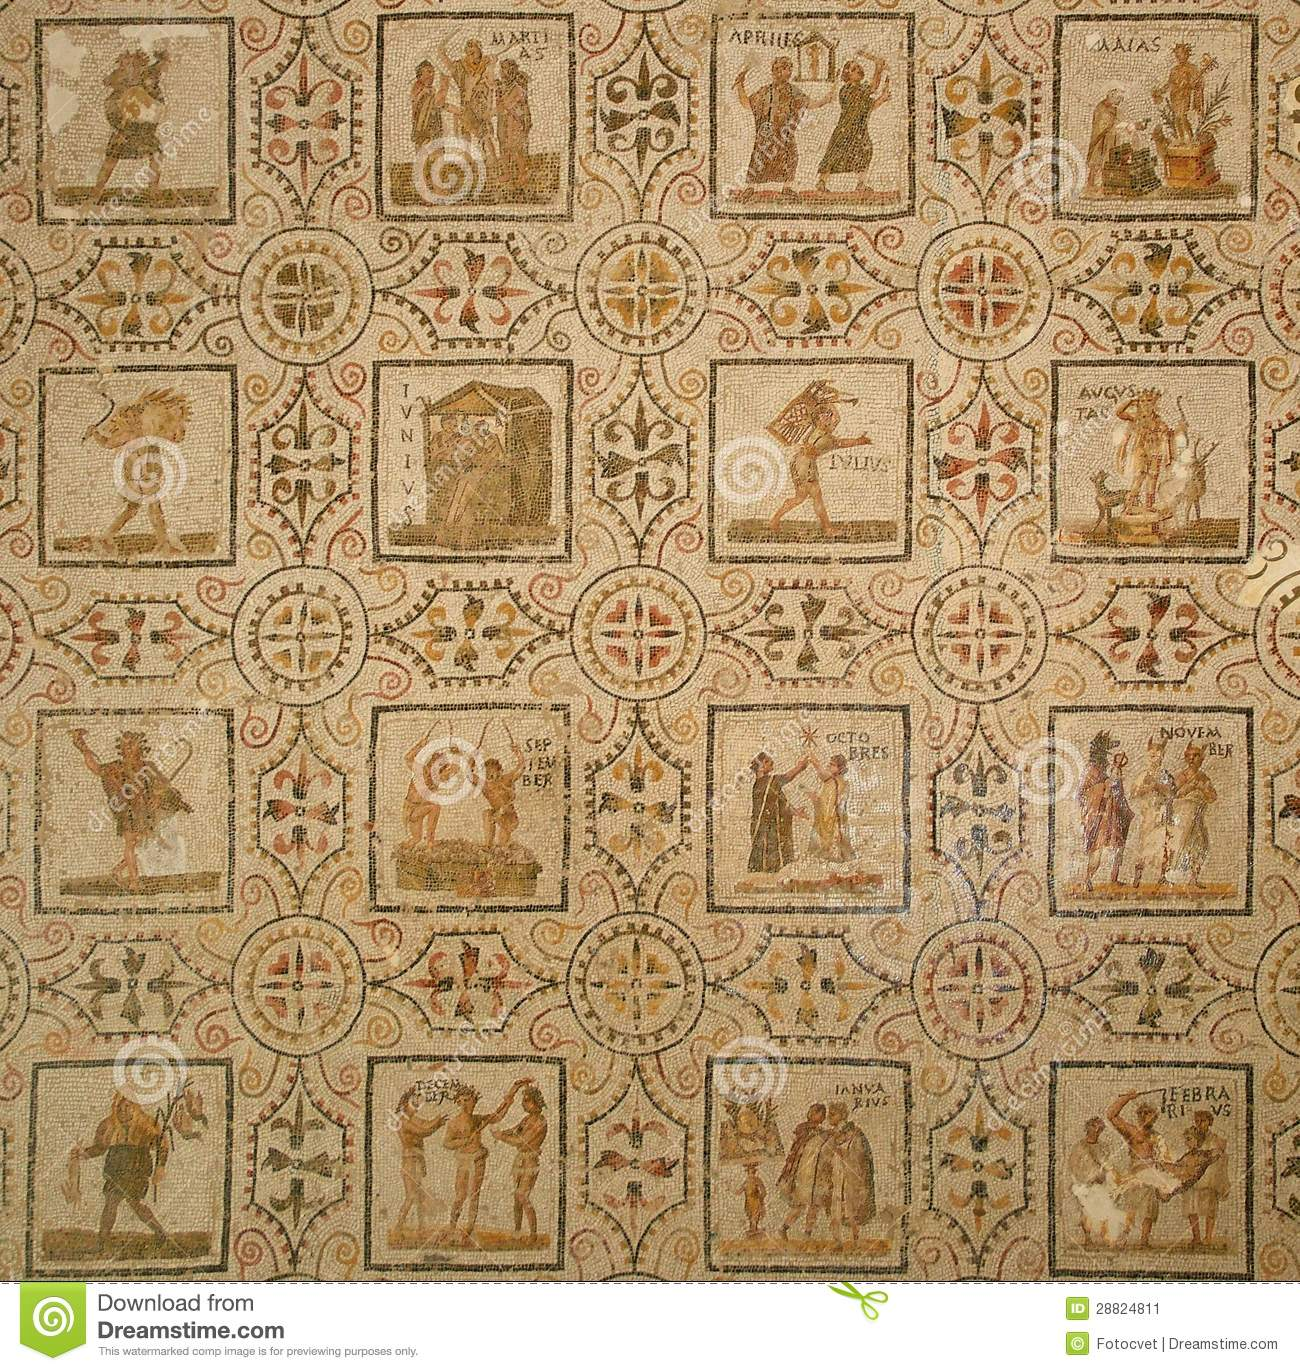 ancient roman calendars Earliest roman calendars had ten lunar months, starting with martius (march), which was the start of the campaigning season and thus sacred to mars, the roman war god origins for the names of.